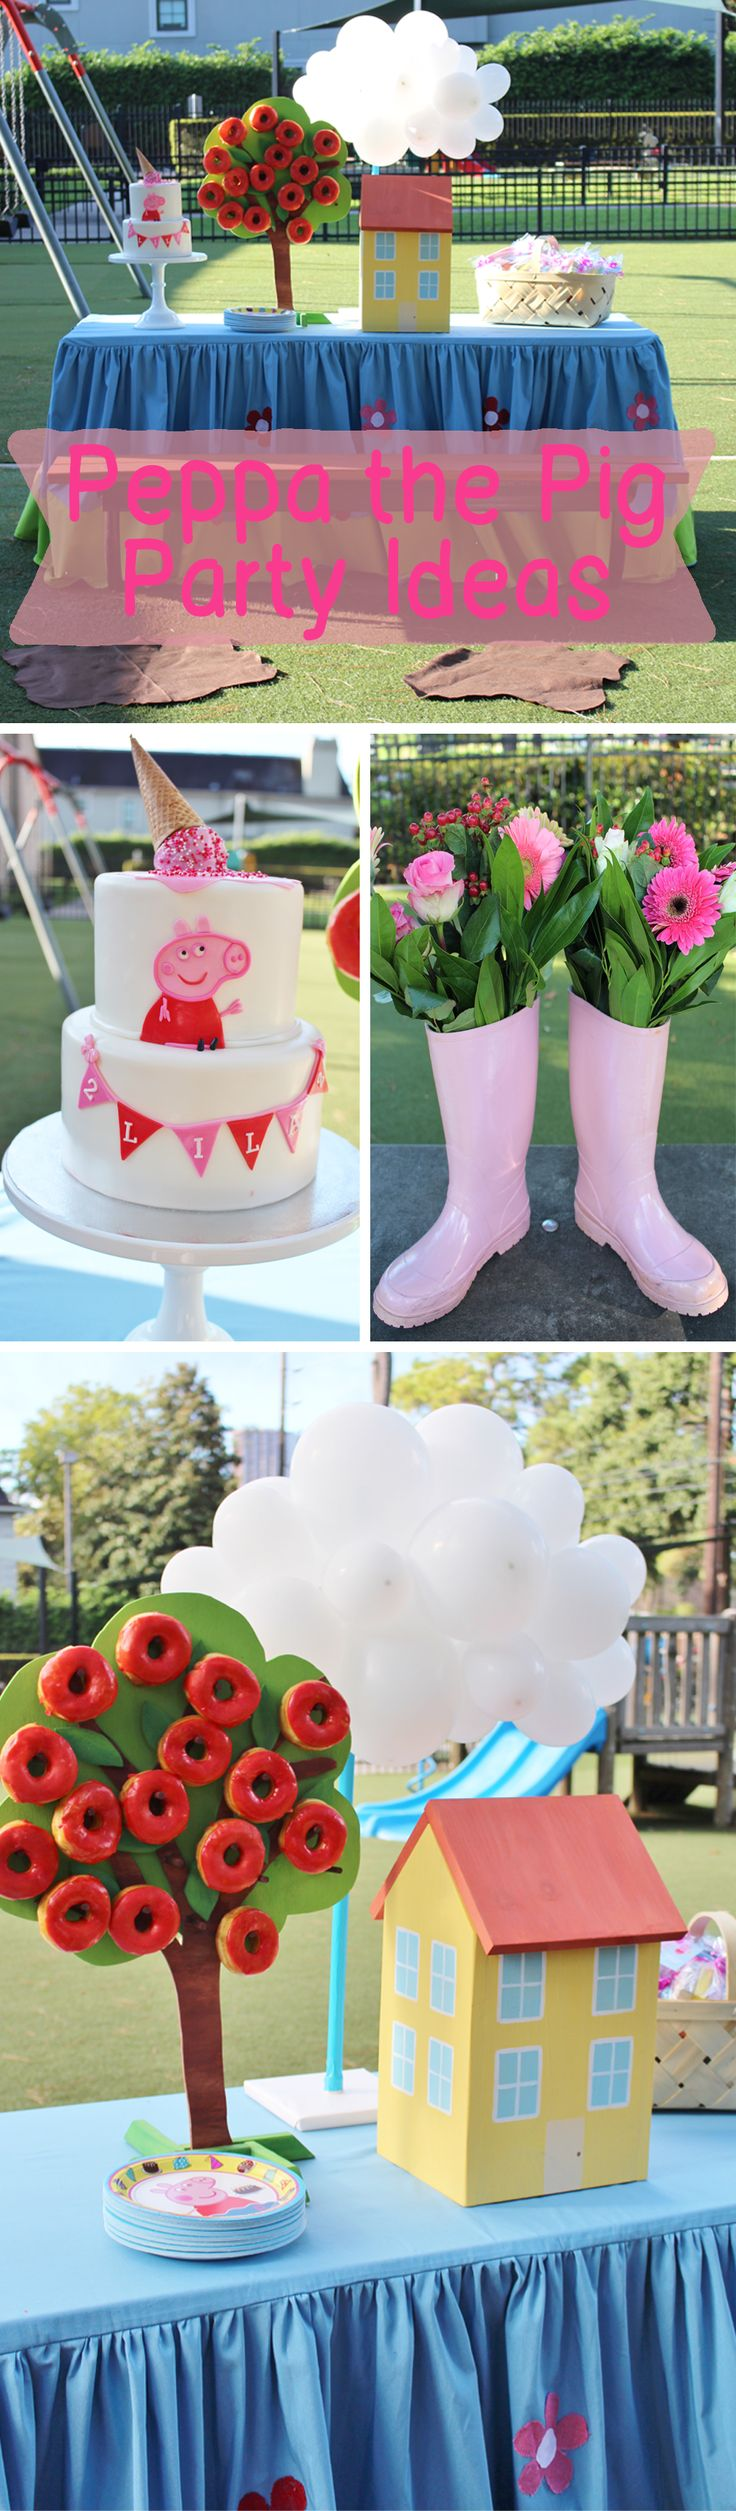 Peppa the Pig Party Ideas, Peppa the Pig Birthday Party, Peppa the Pig Birthday Party Ideas, Peppa the Pig Party, Park Party Ideas